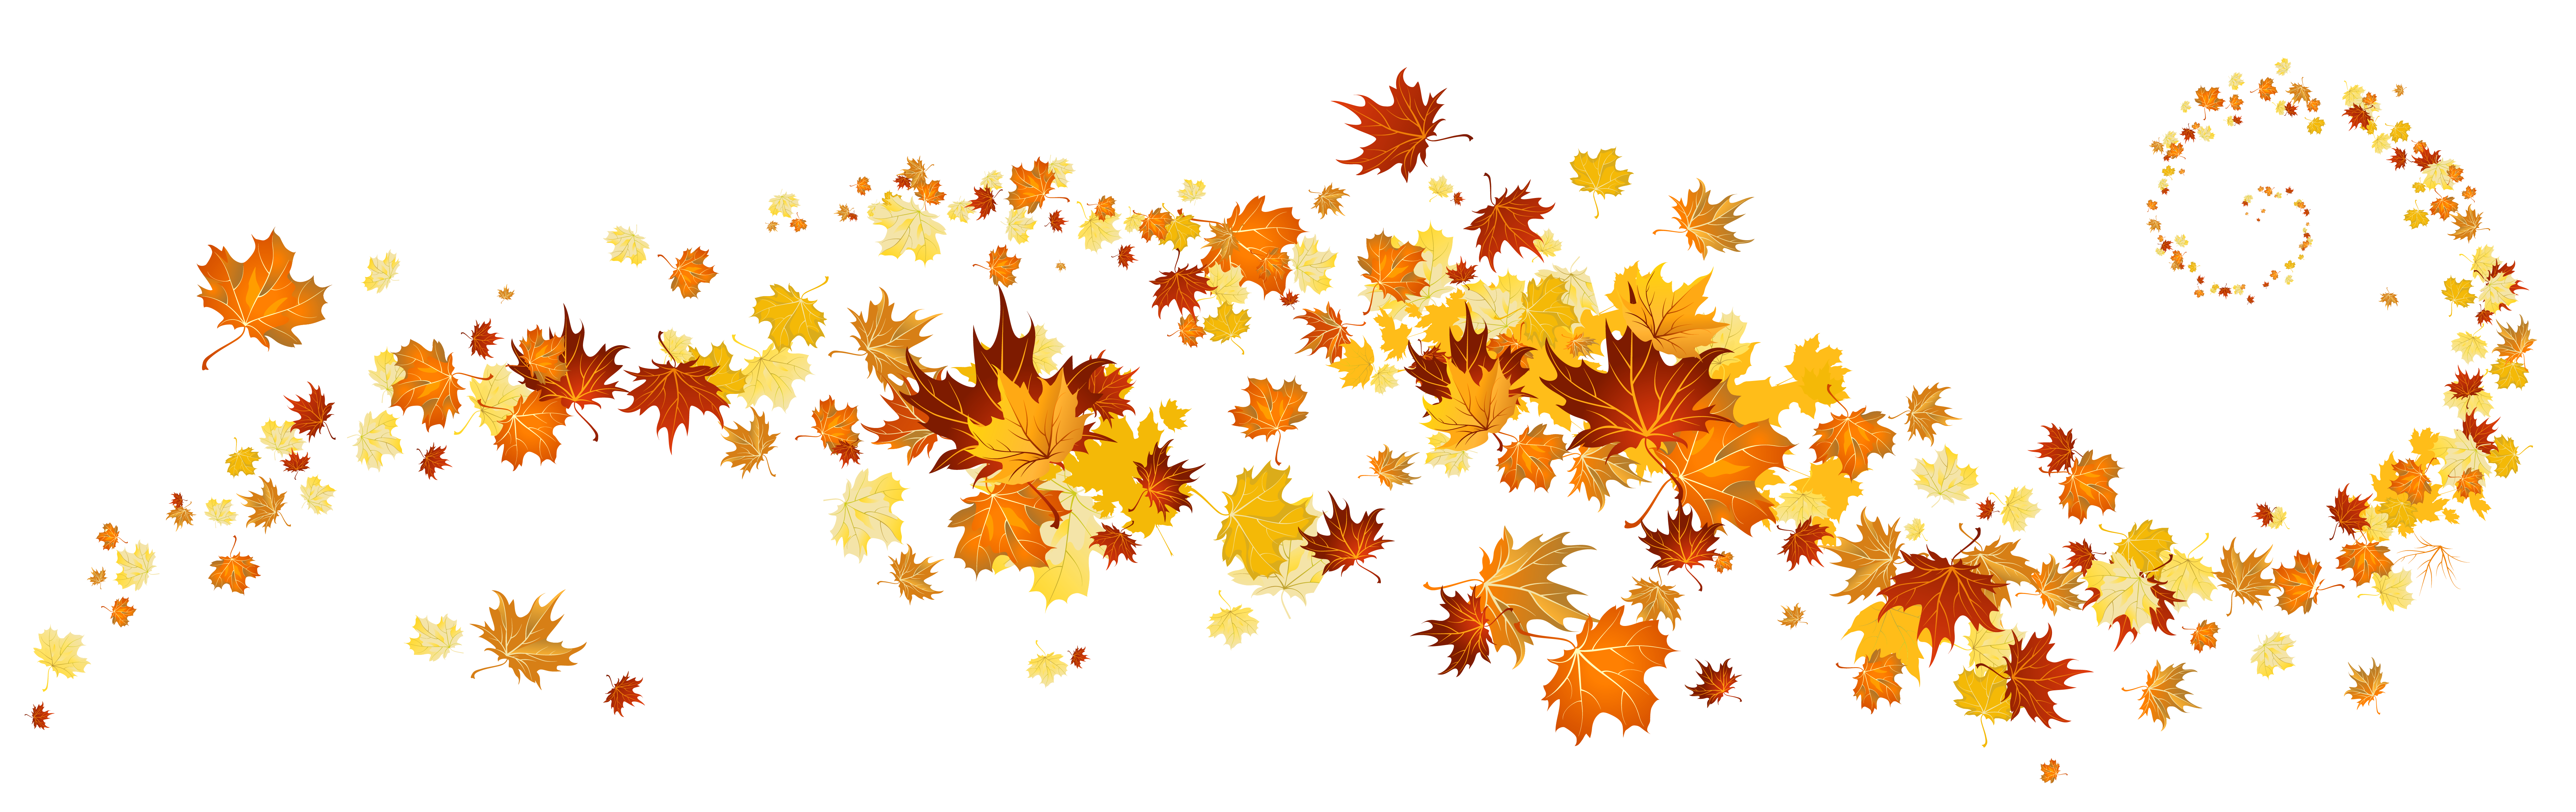 Fall clipart #7, Download drawings